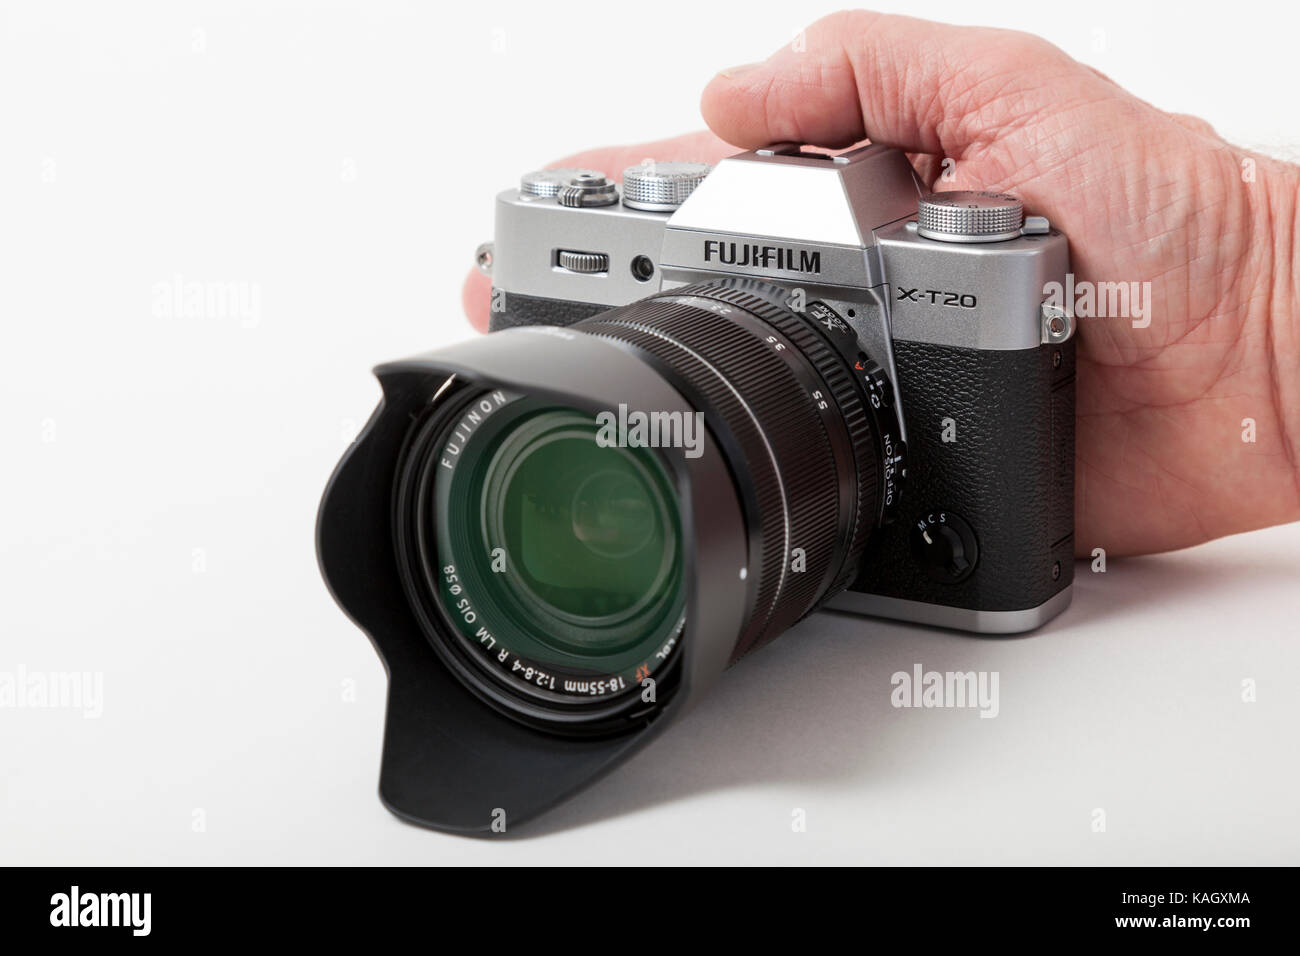 f59ea5c92b9 Fujifilm X-T20 mirrorless digital camera with the 18-55 mm lens against the  photographer's hand to show camera's small size